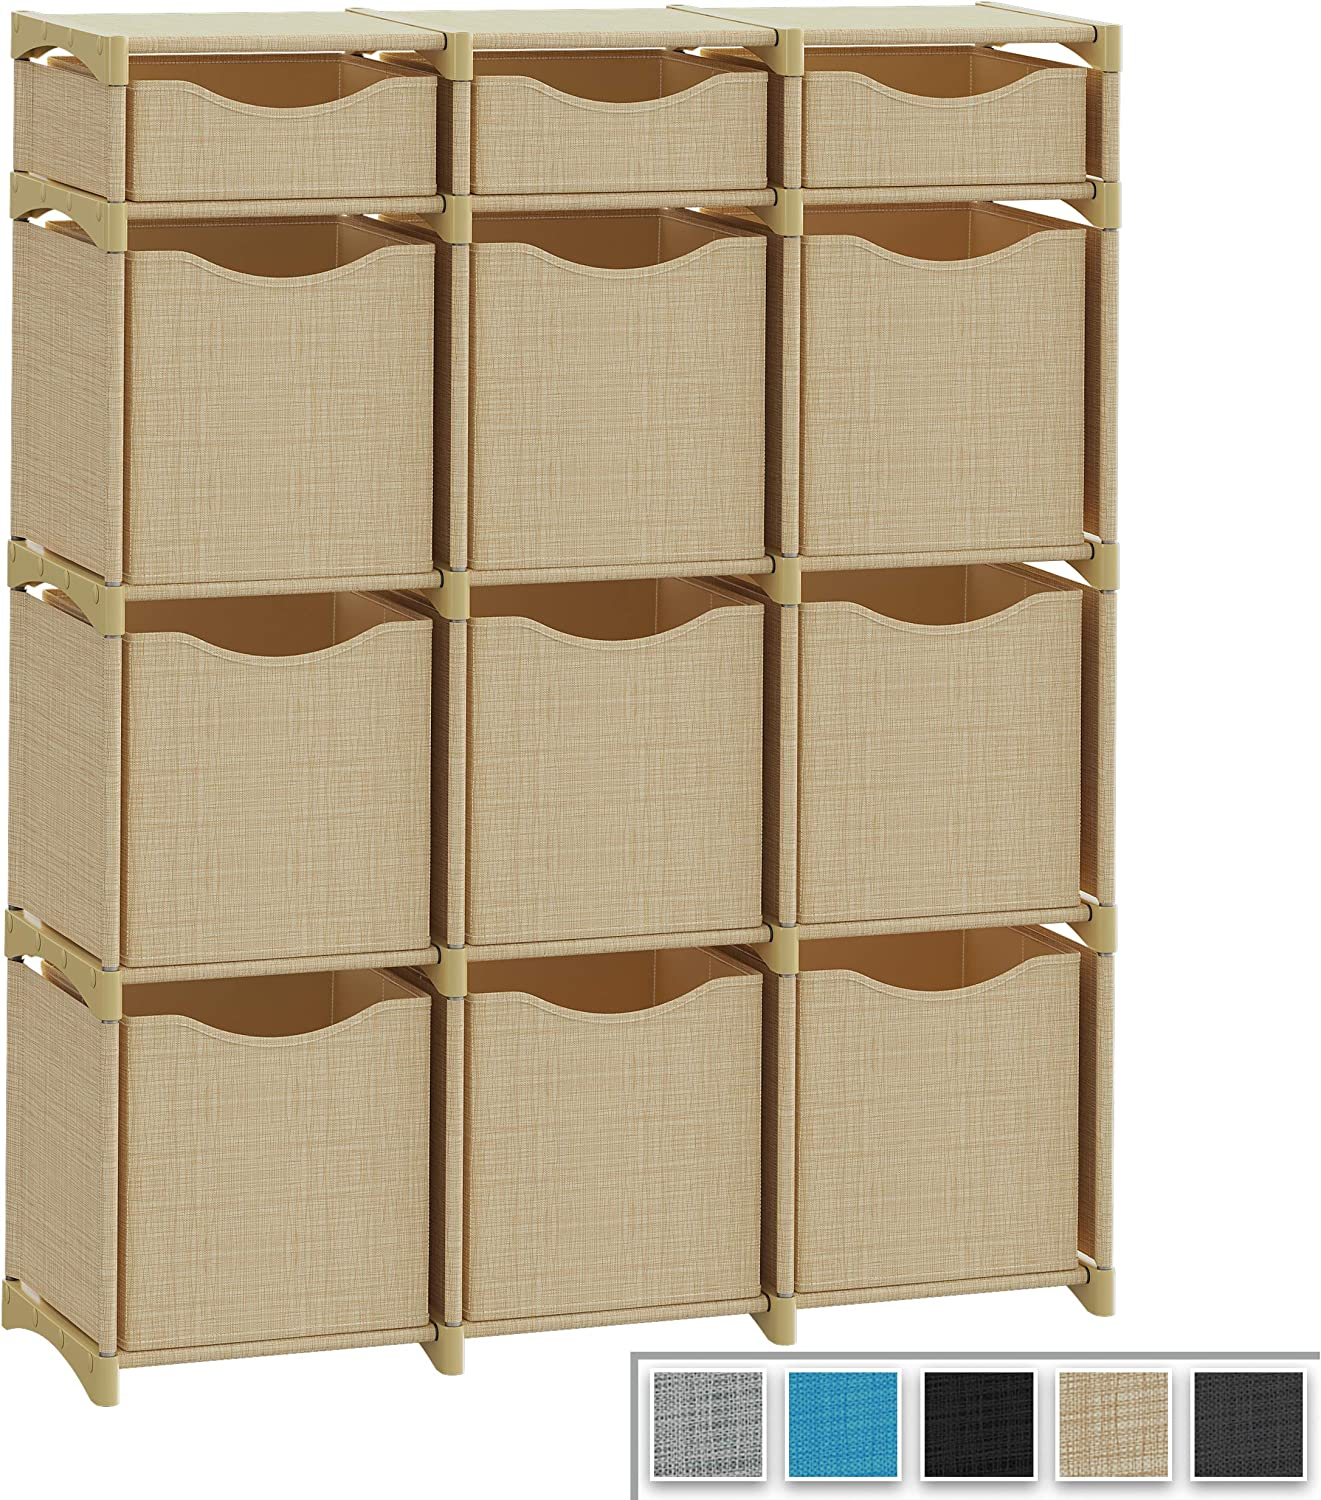 12 Cube Organizer | Set of Storage Cubes Included | DIY Closet Organizer Bins | Cube Organizers and Storage Shelves Unit | Closet Organizer for Bedroom, Playroom, Livingroom, Office, Dorm (Beige)